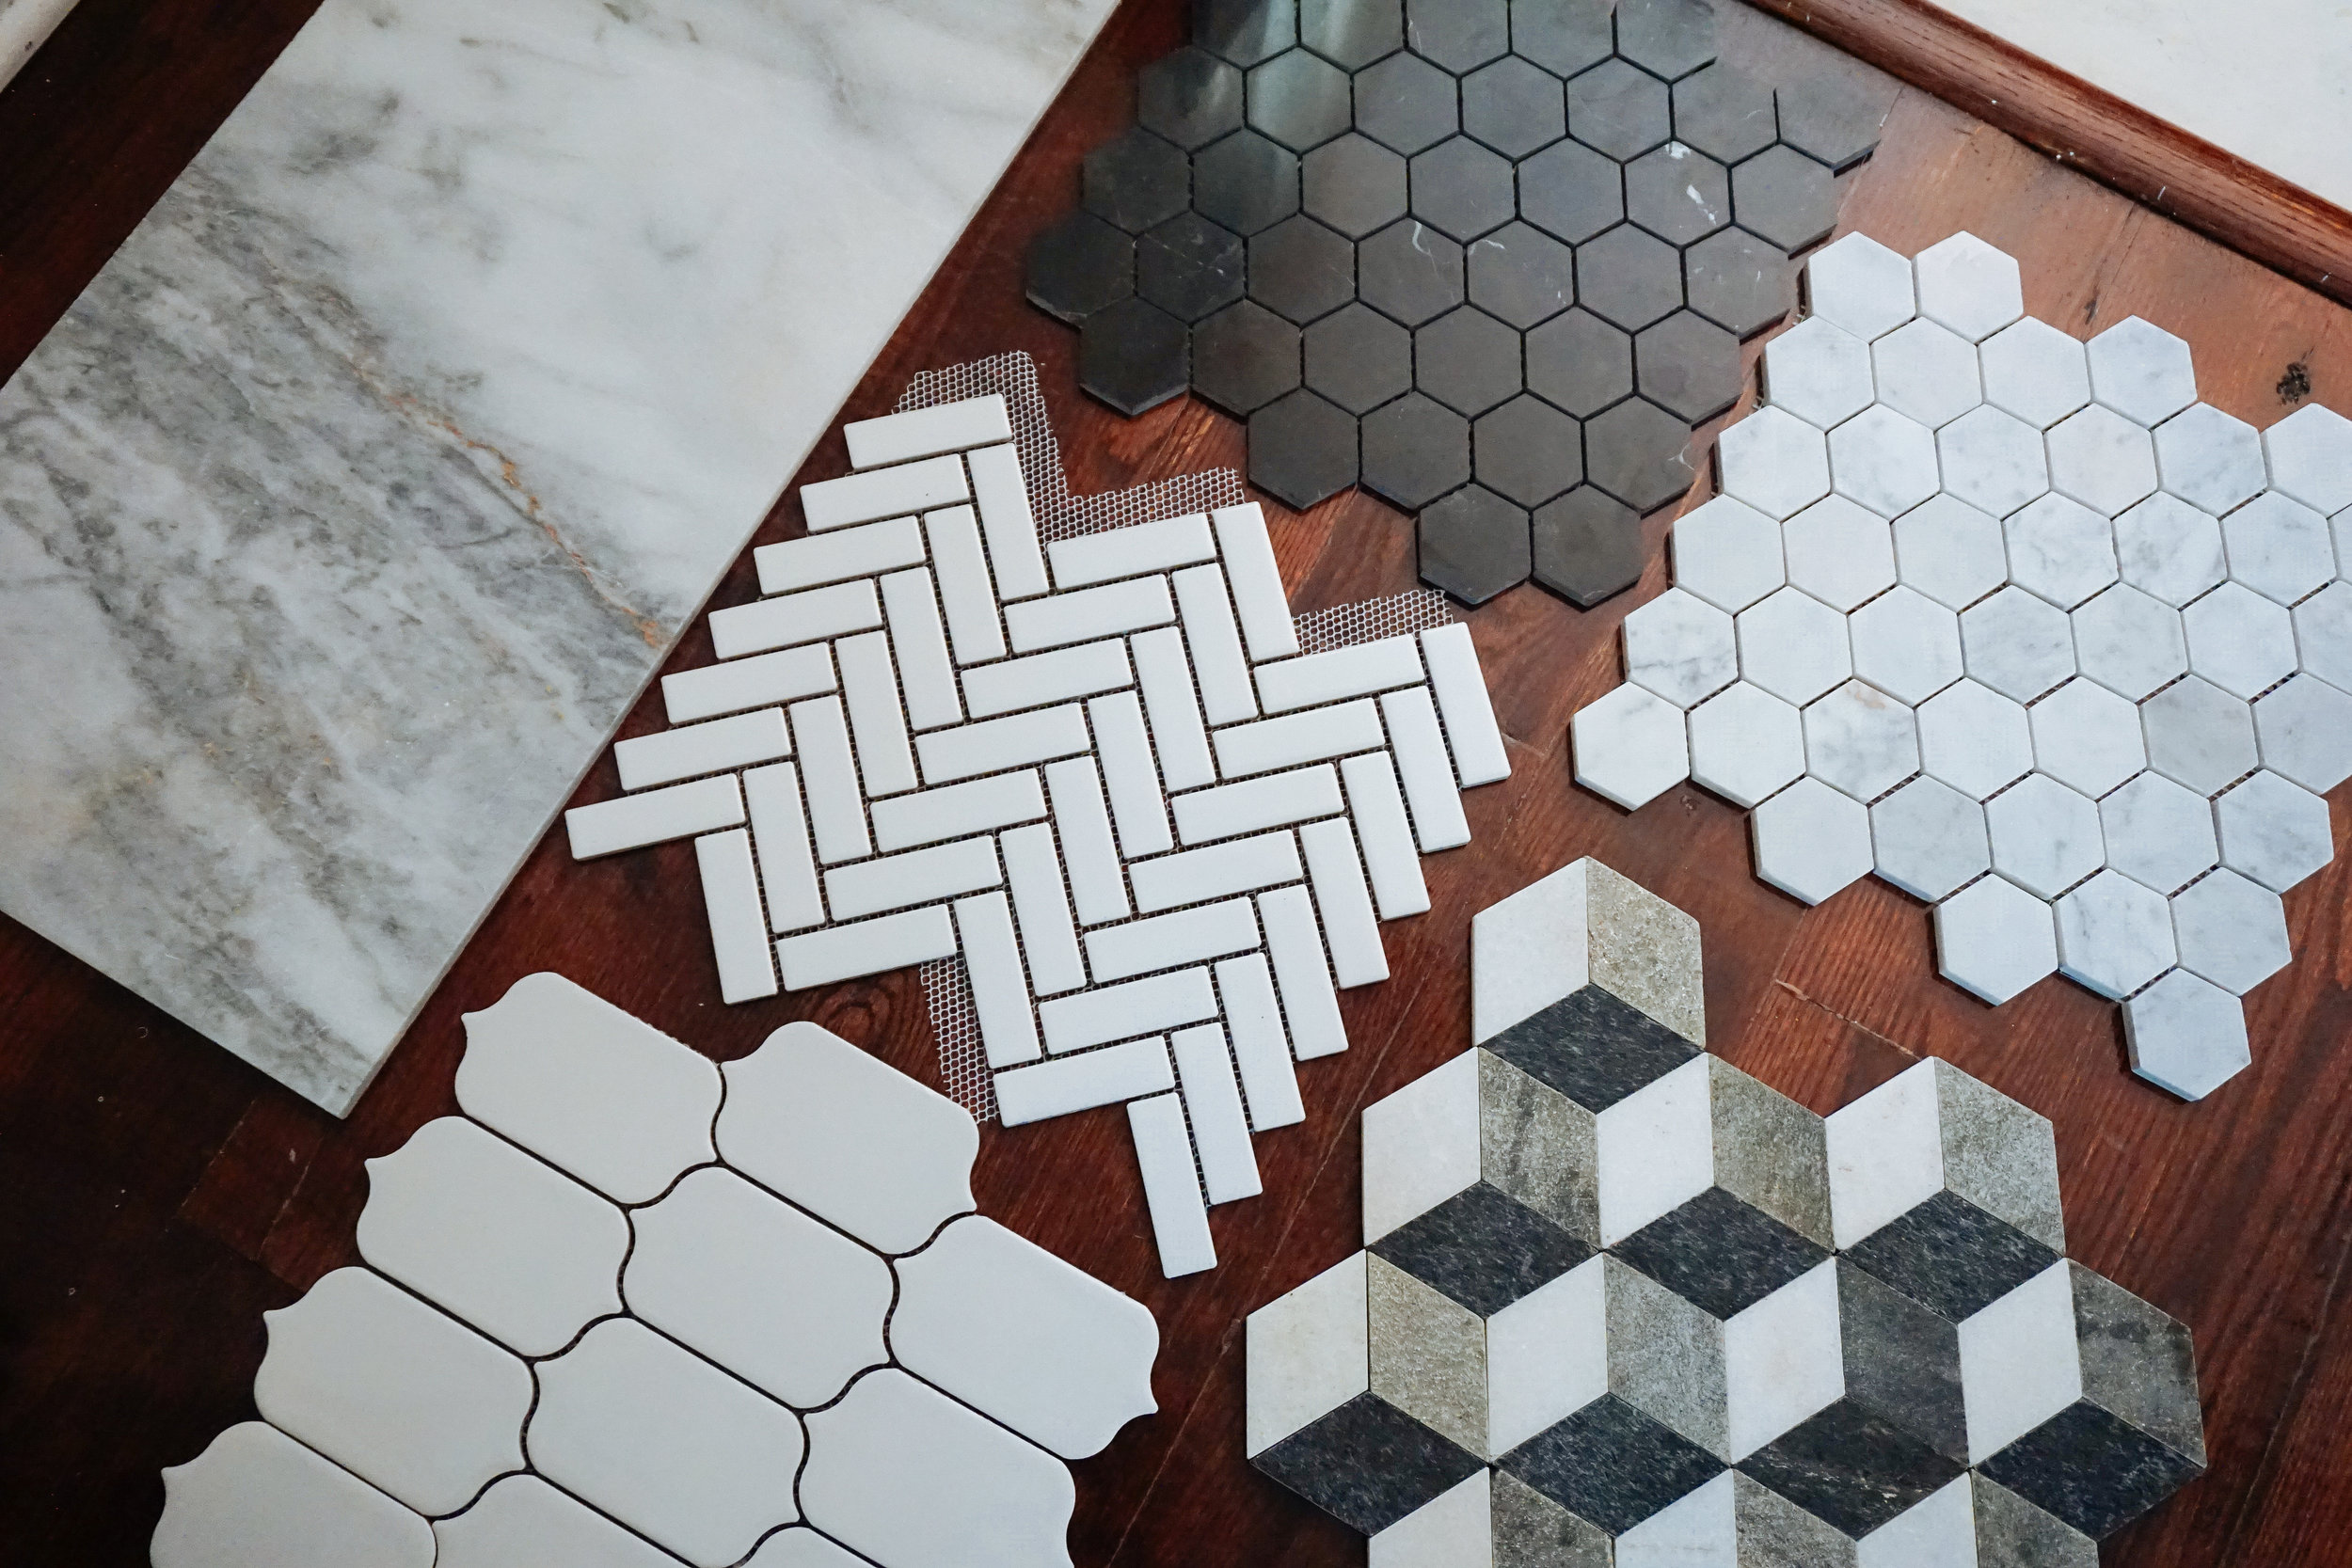 Above: a few of the [many] tile selections we had to choose from!